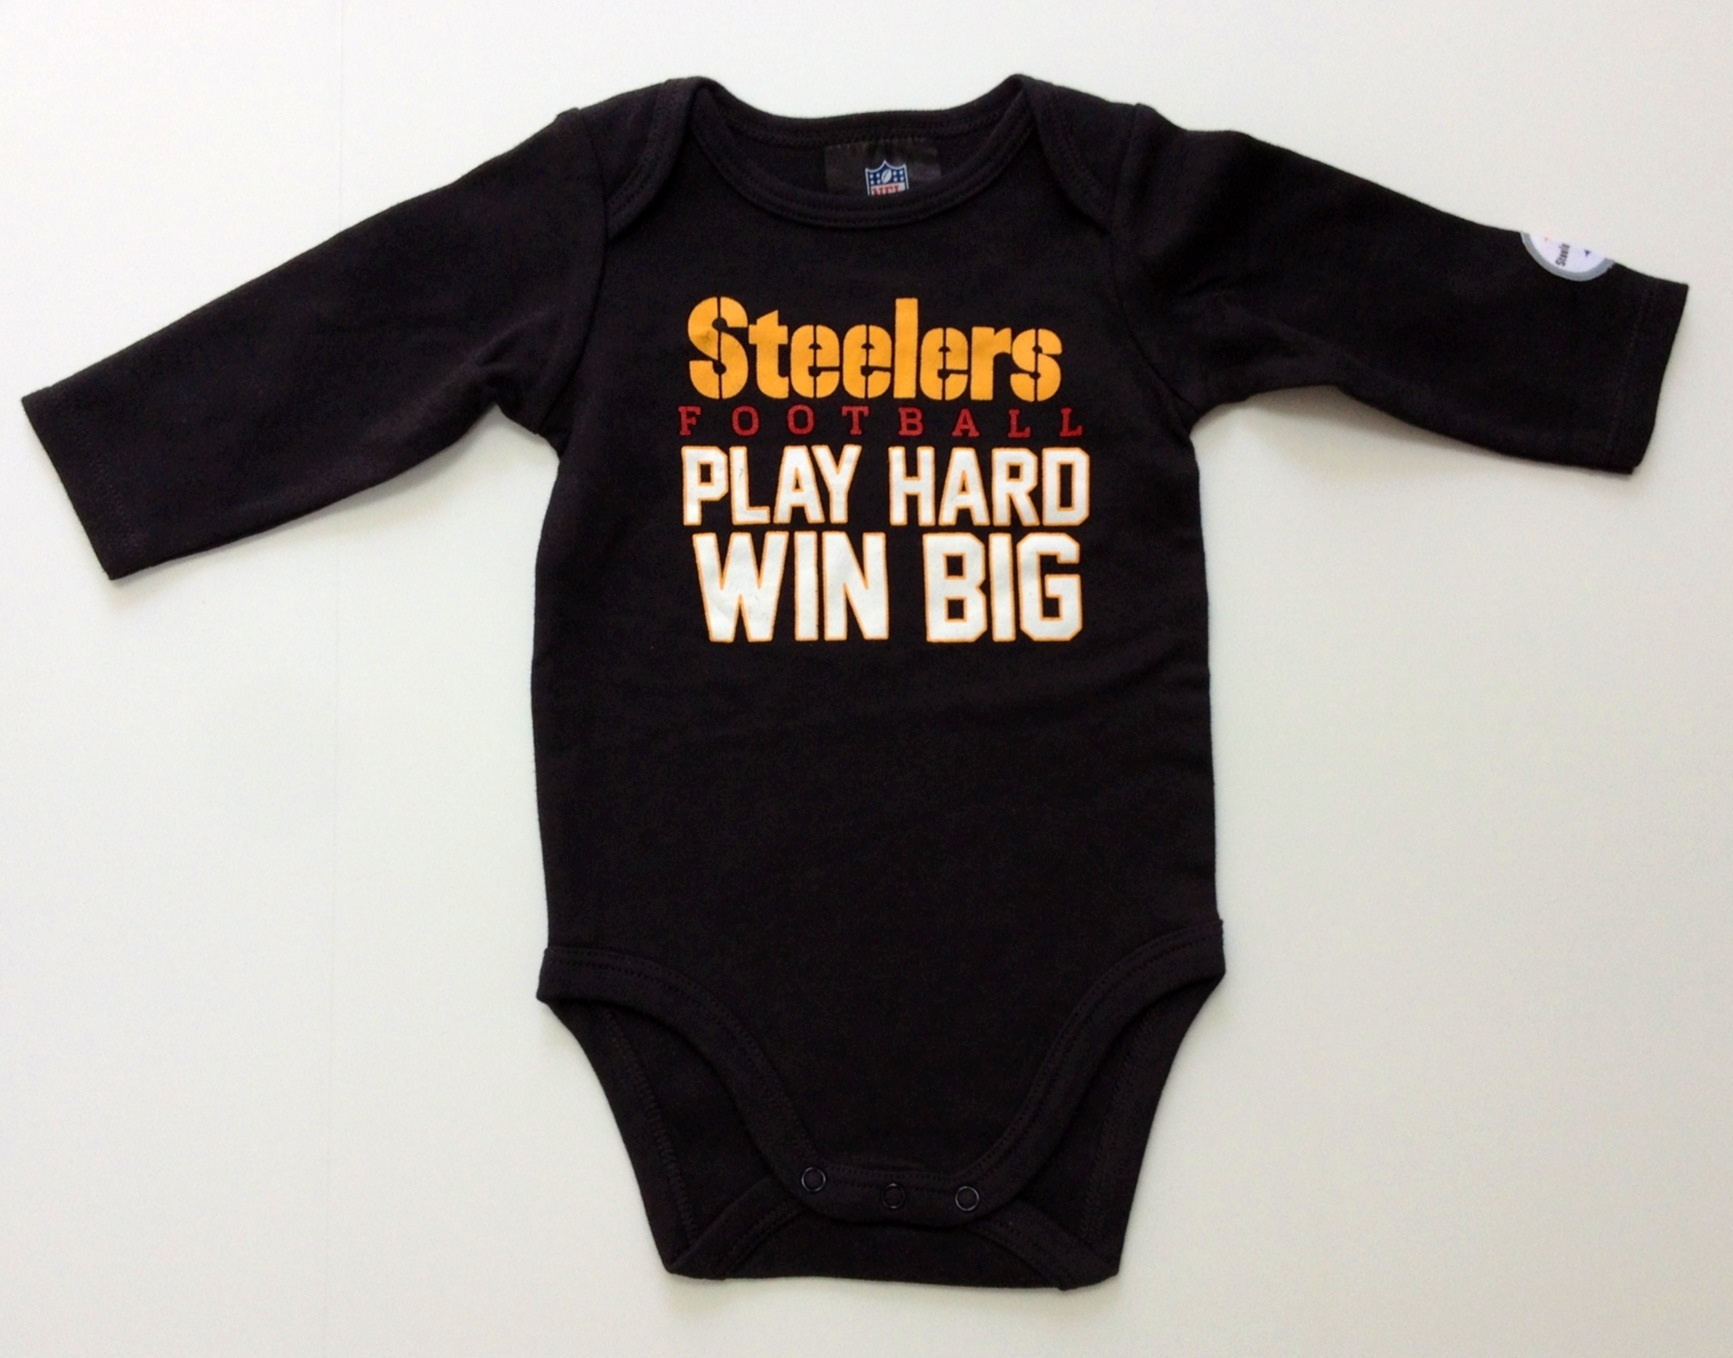 nfl-steelers-infant-black-gold-longsleeve-onesie-2-pack-3j.jpg